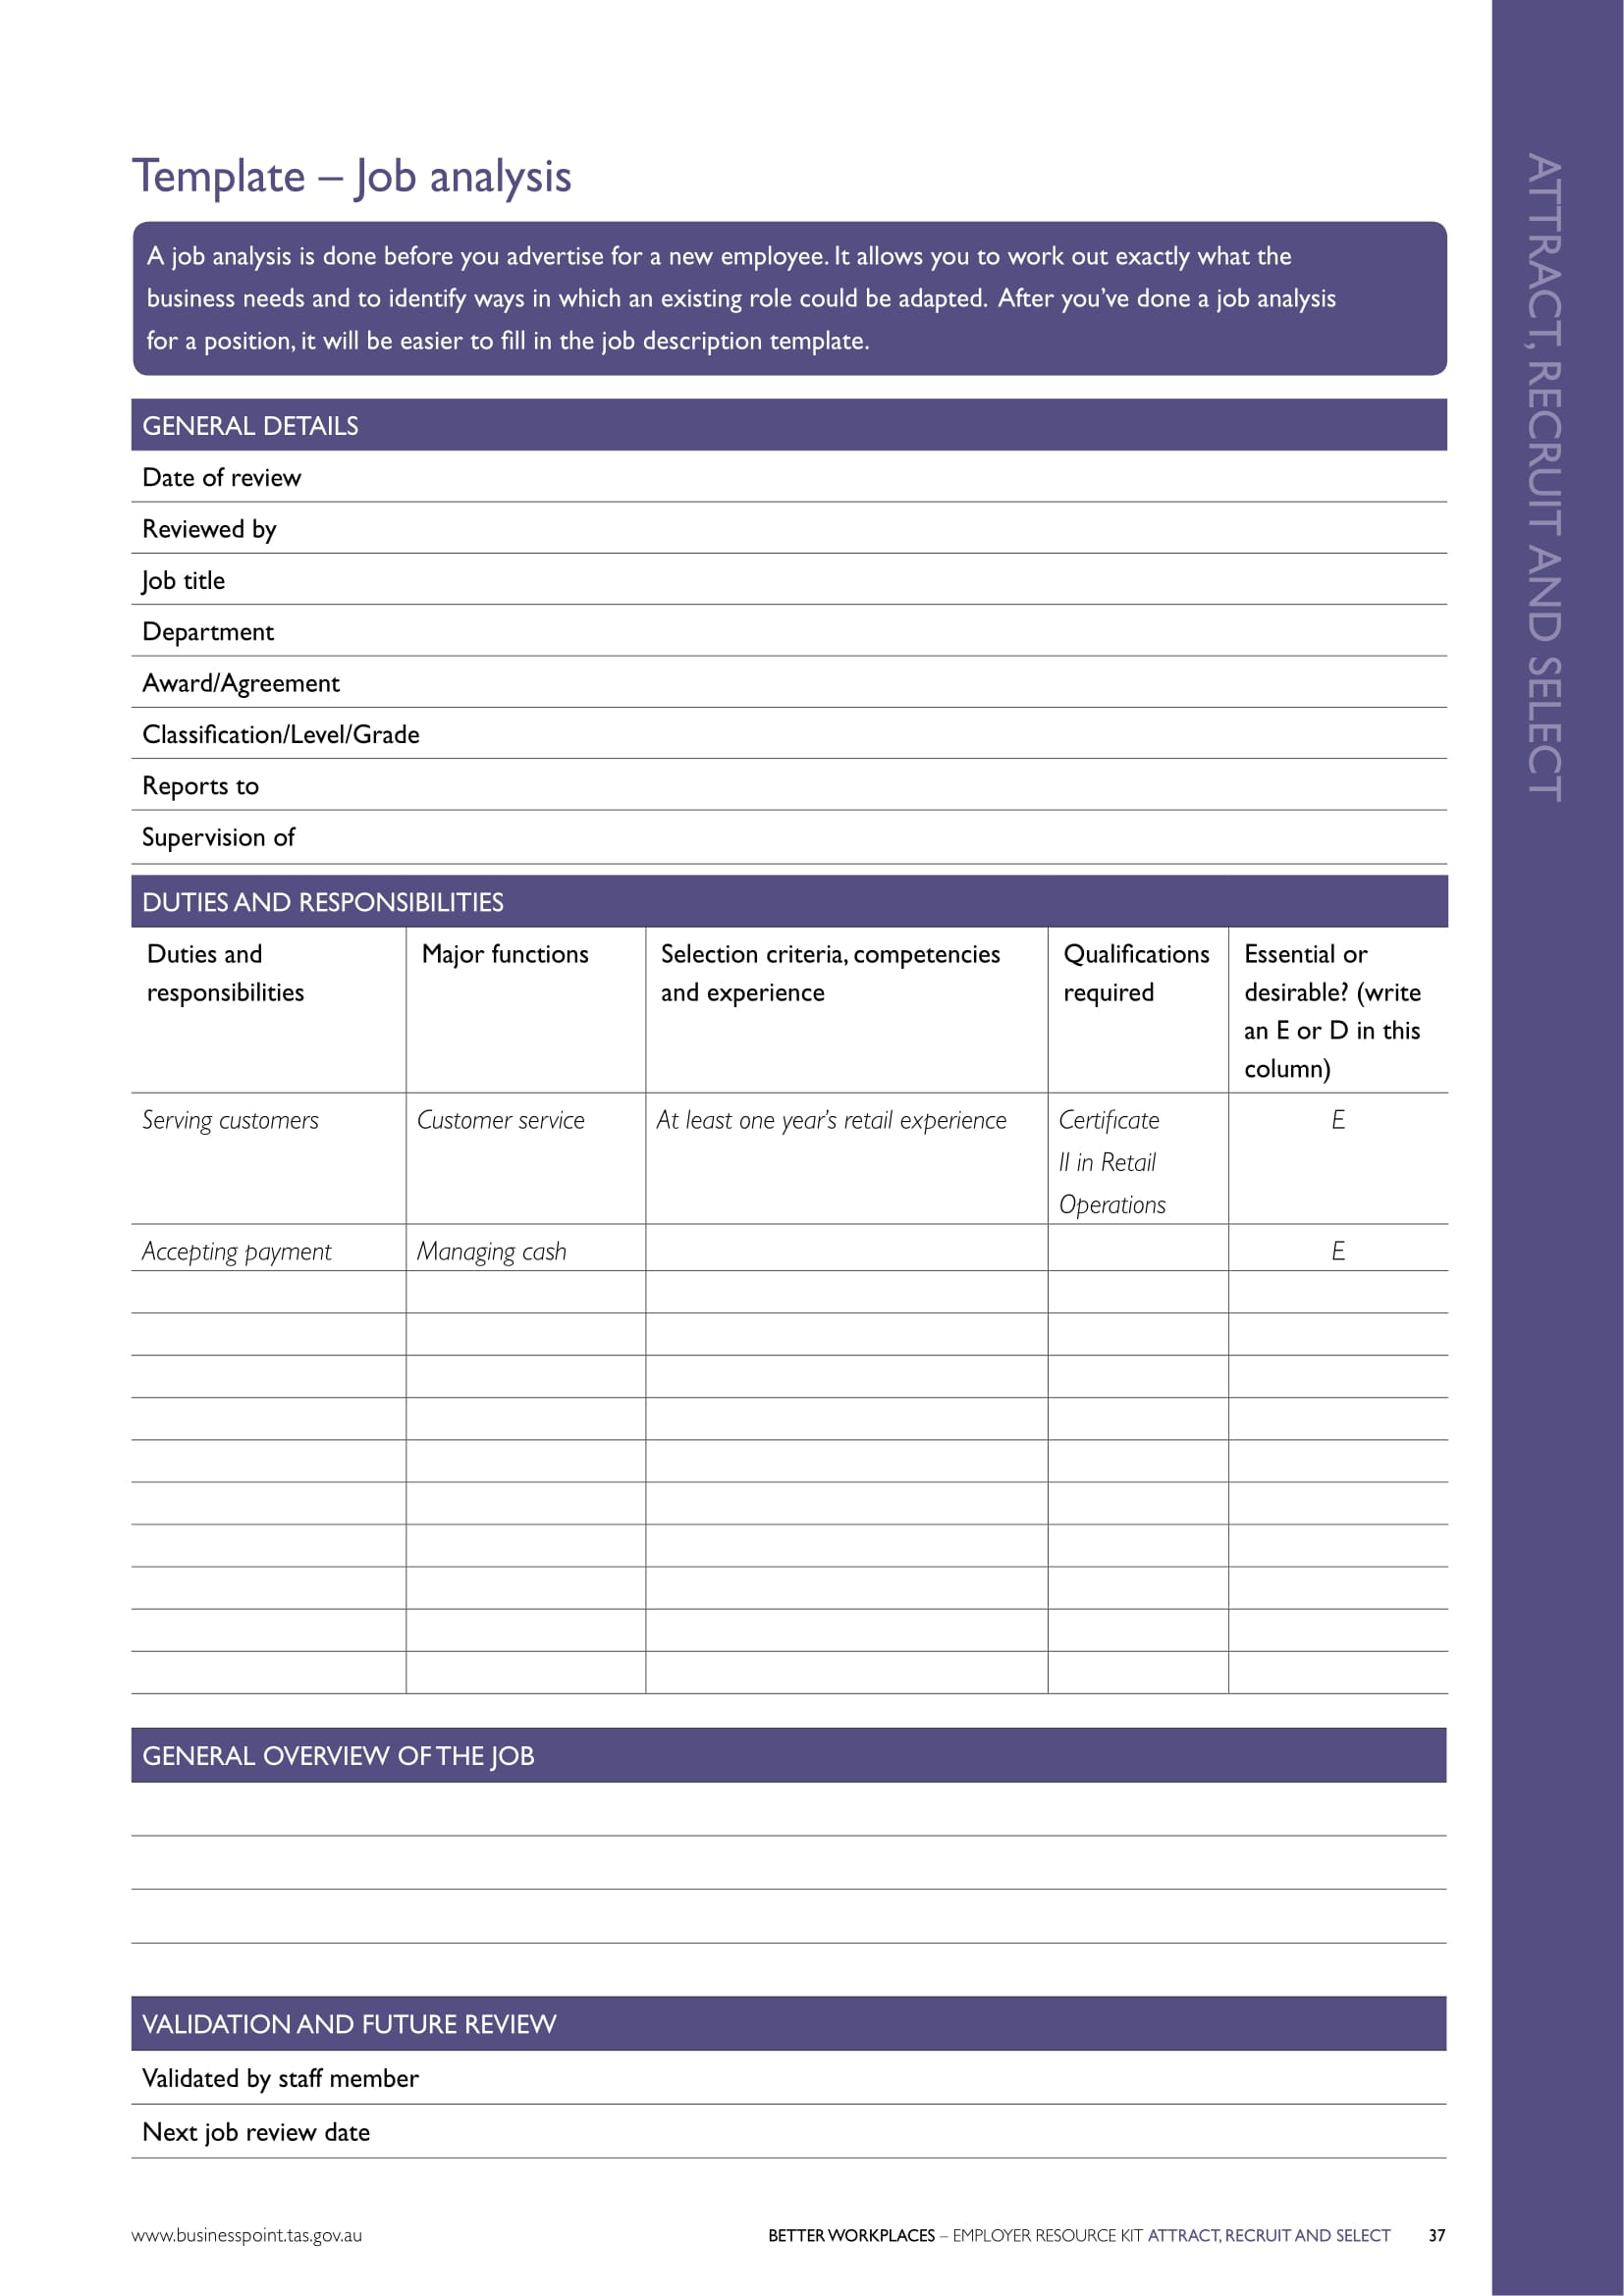 recruitment job analysis form 1